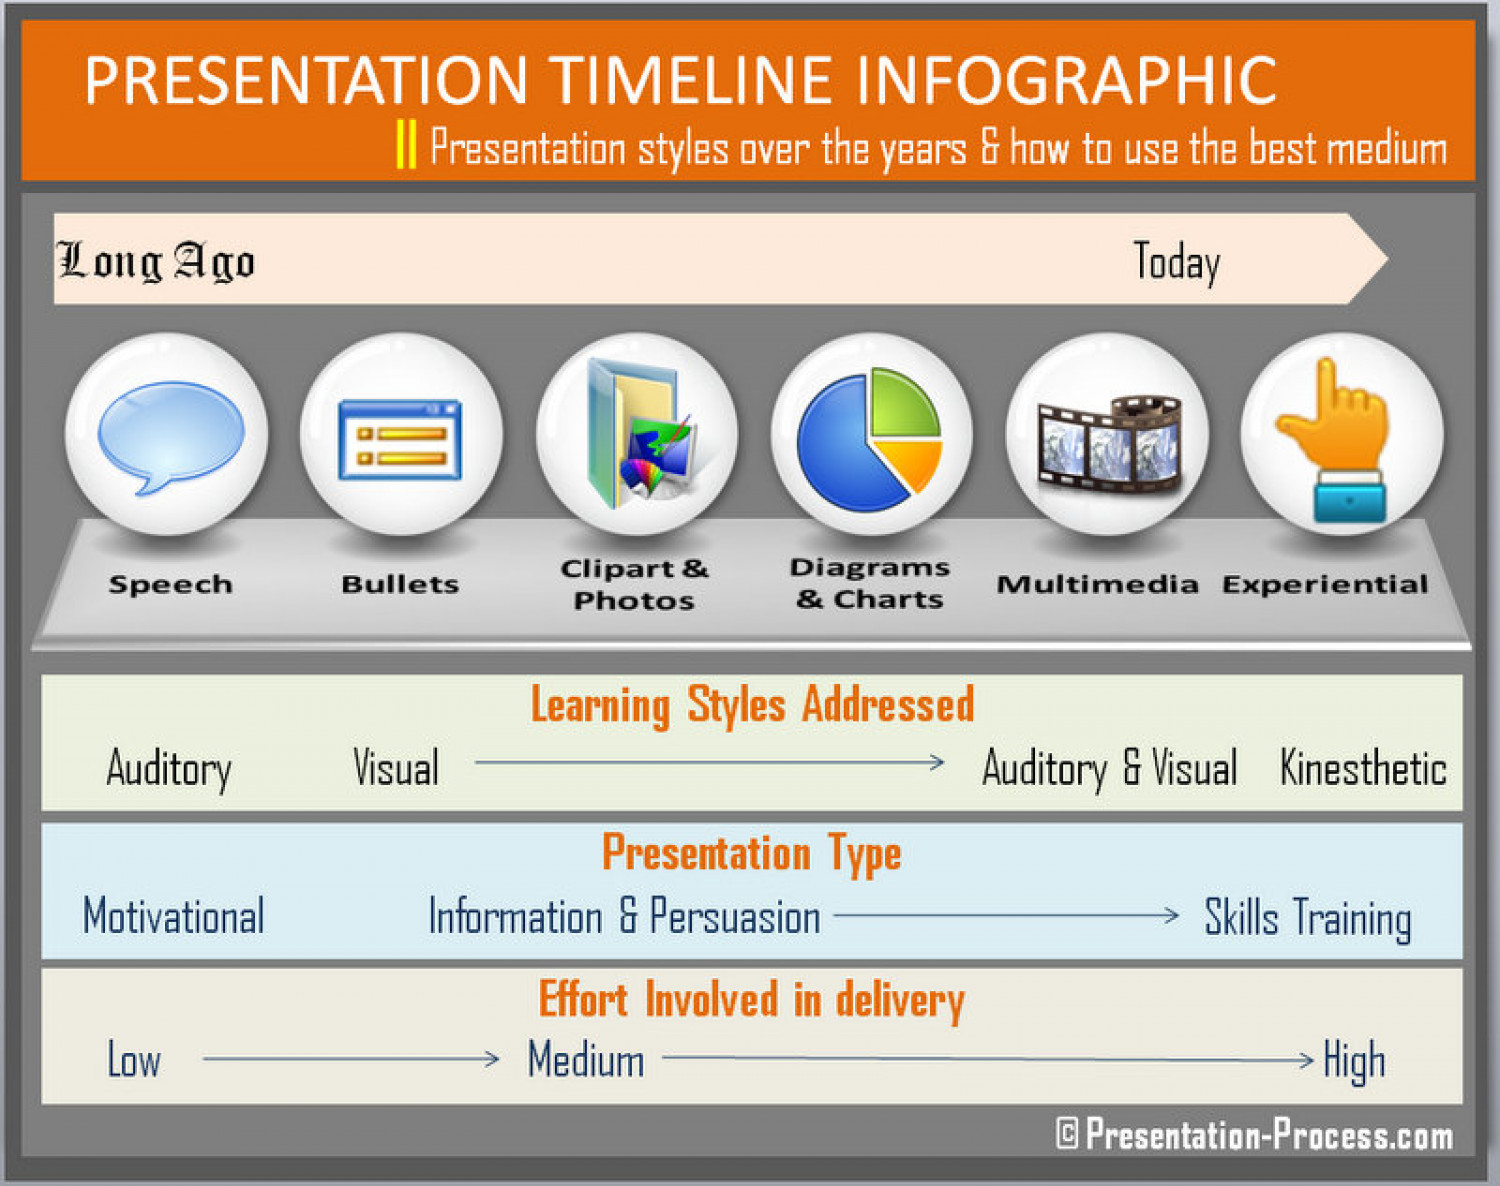 Presentation Timeline Infographic Showing change in styles  Infographic